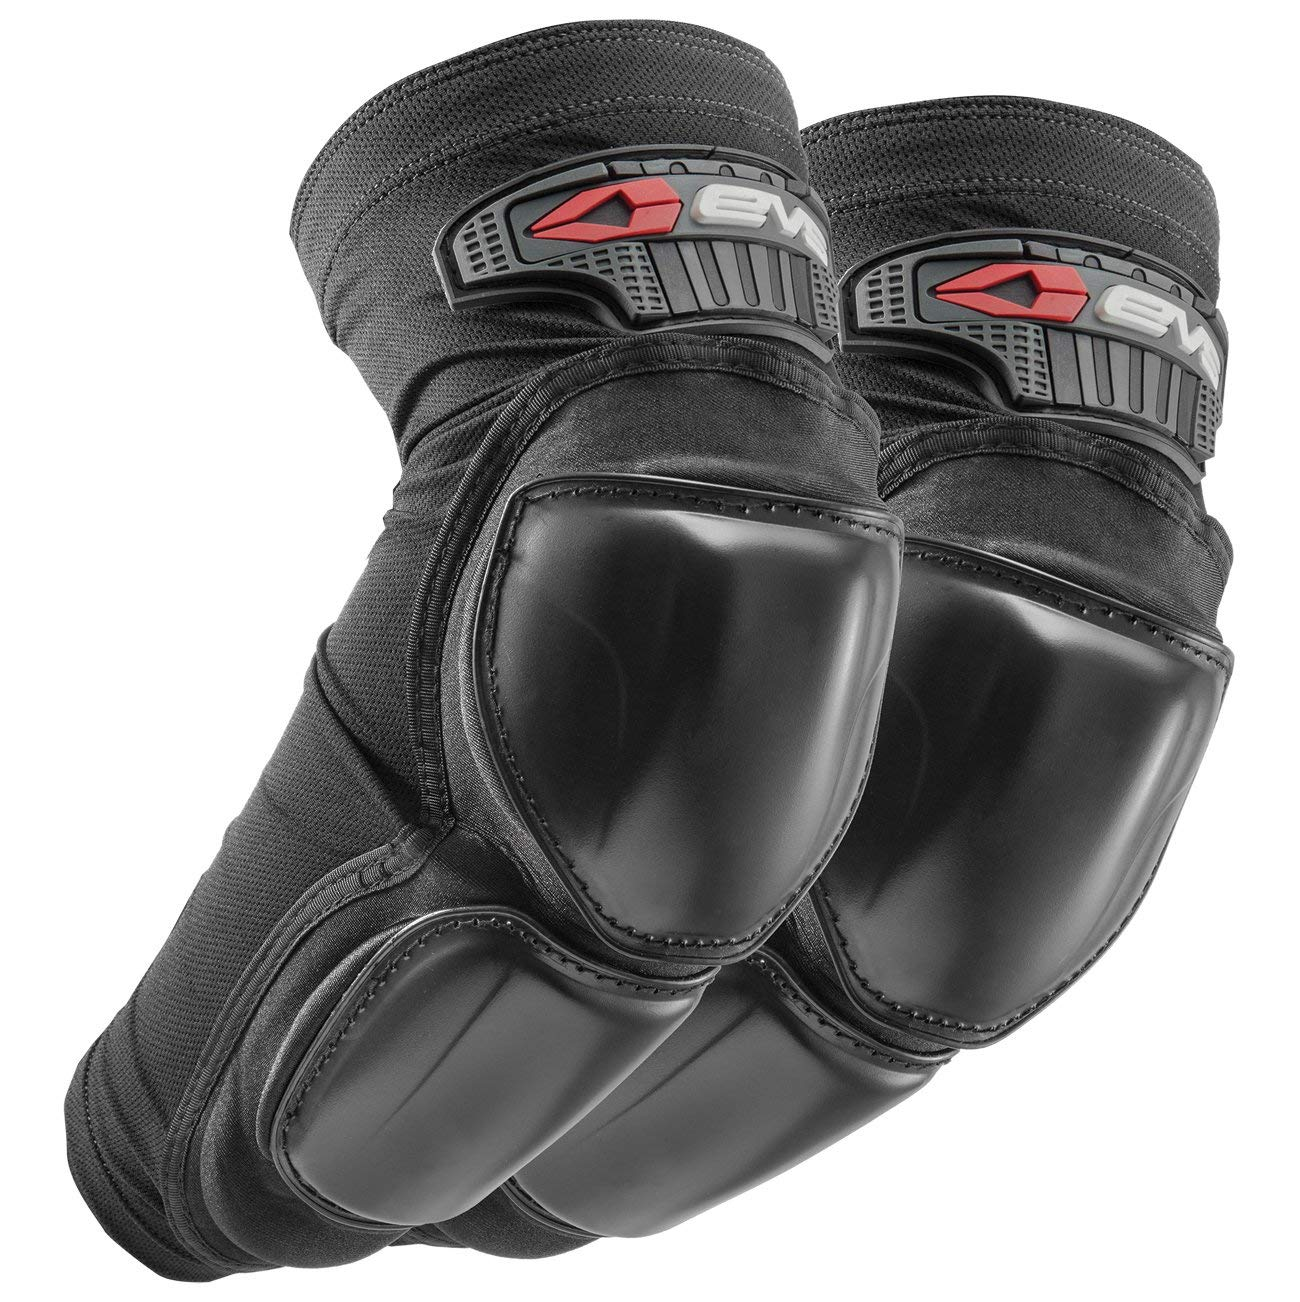 Black//Small EVS Burly Adult Street Motorcycle Elbow Guard Pair